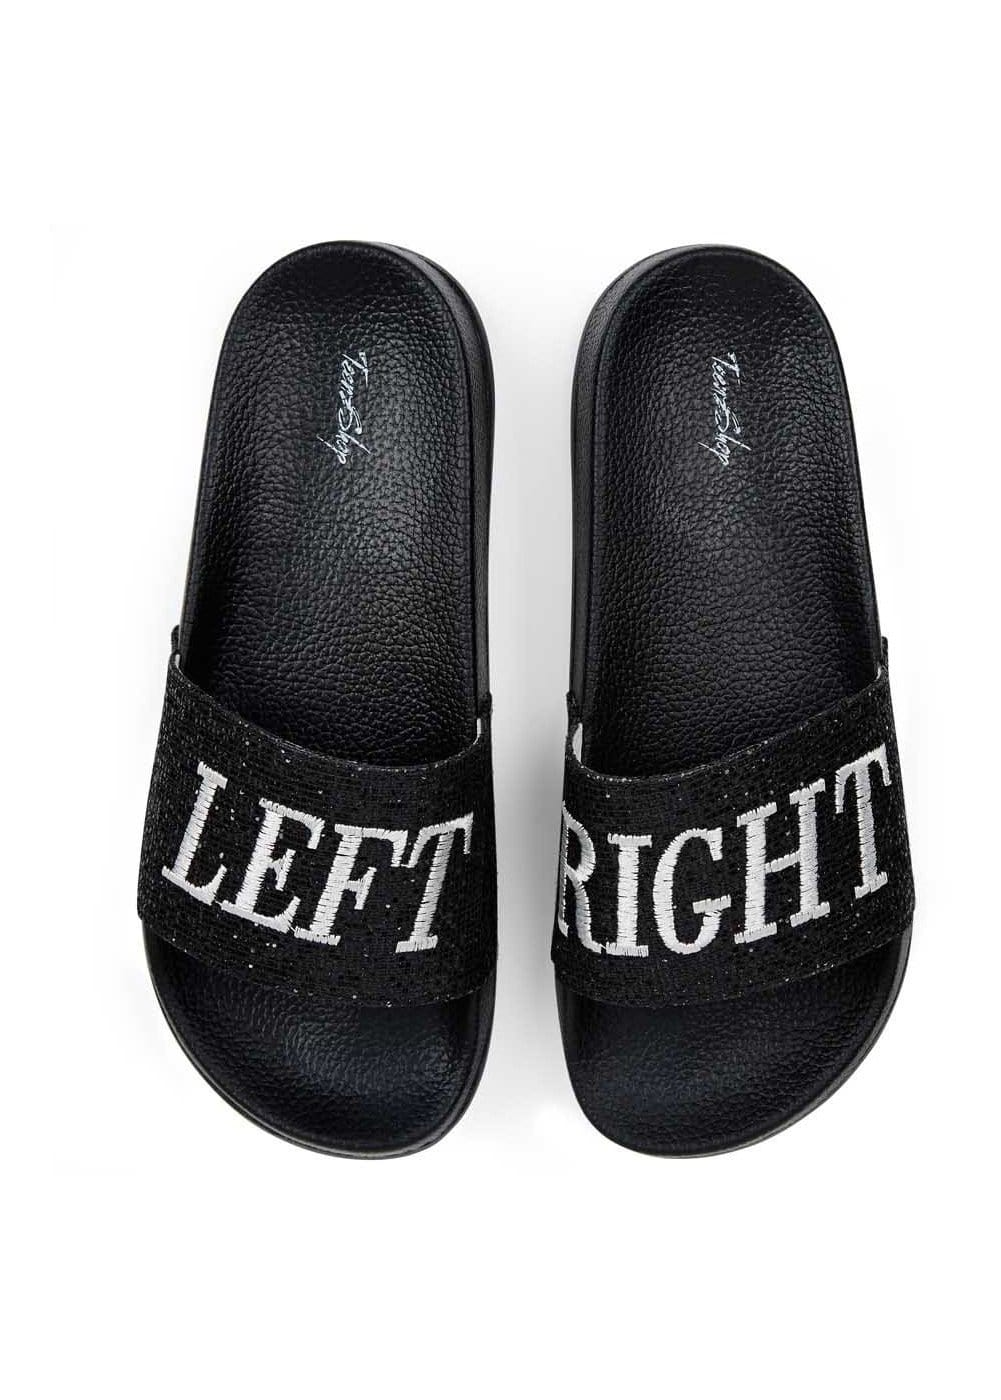 Teenzshop Left Right Glitter Pool Sliders